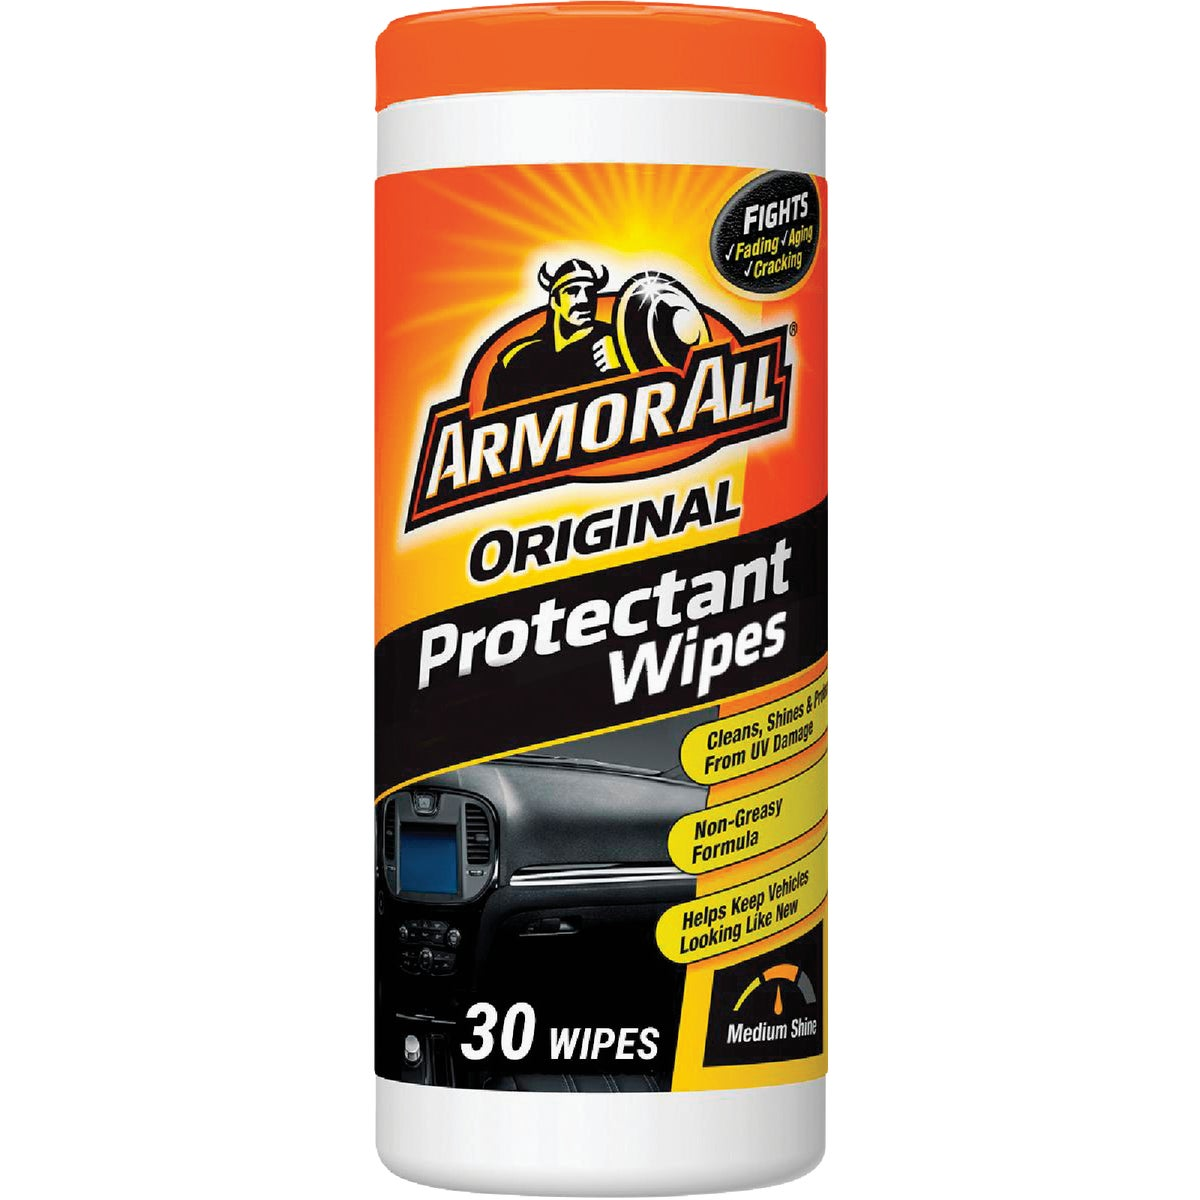 25CT PROTECTANT WIPES - 10861 by Armored Autogroup